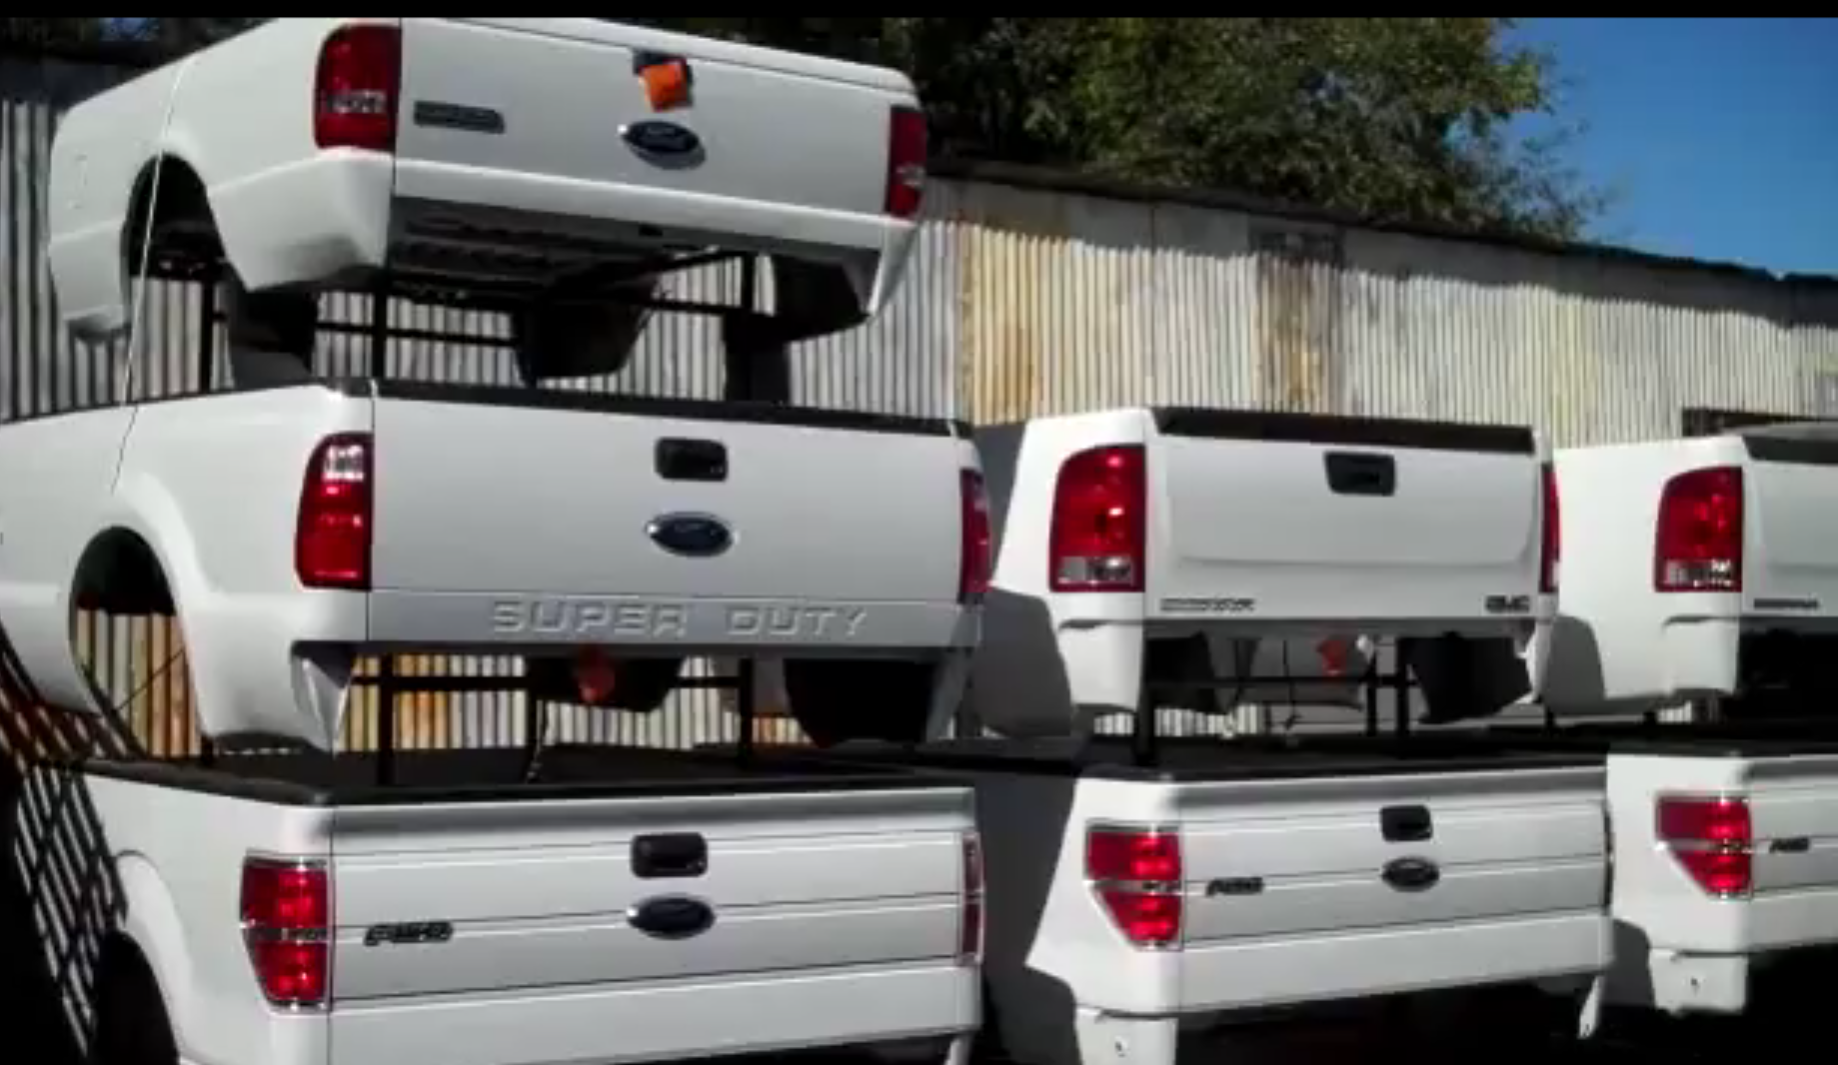 Ford F250 8 Foot Bed For Sale >> Pickup Truck Beds Tailgates Used Takeoff Sacramento